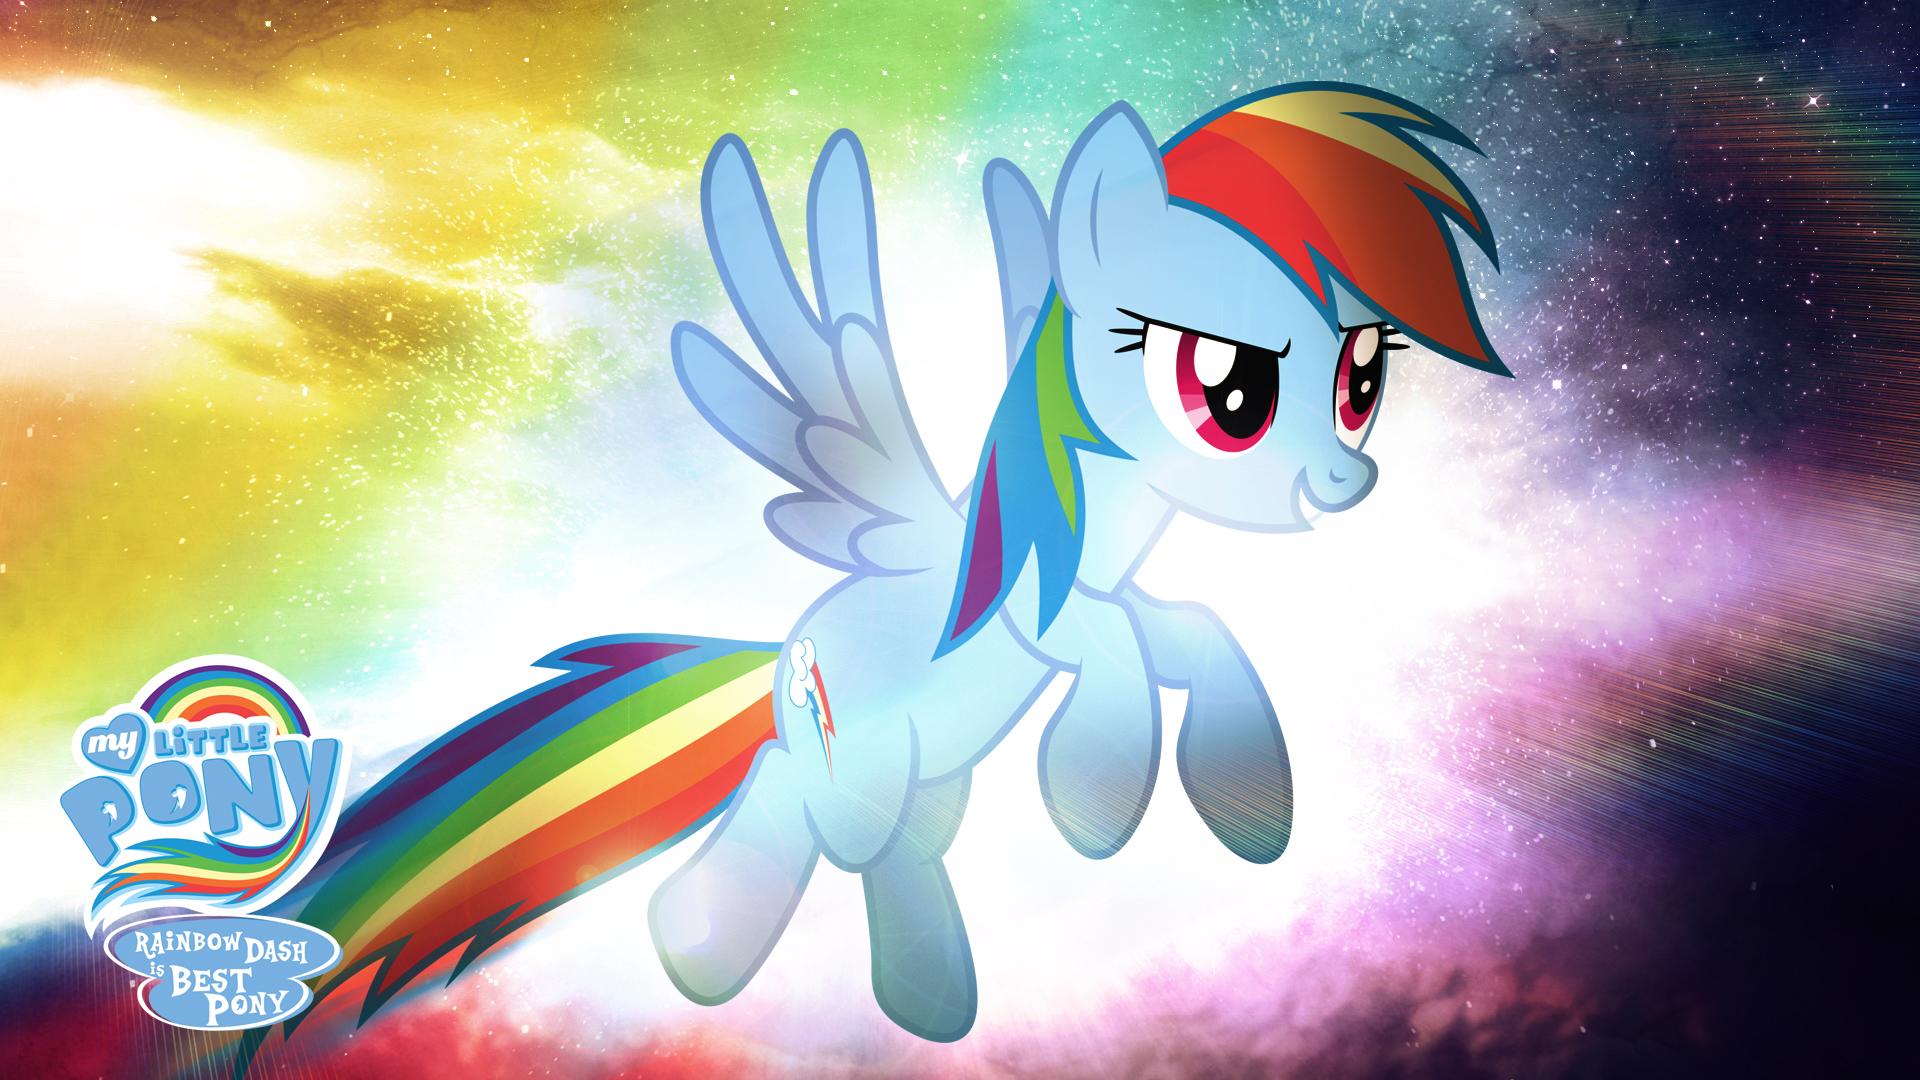 File Name : rainbow_dash_is_best_pony_hd_wallpaper_by_jackardy-d6t1d74